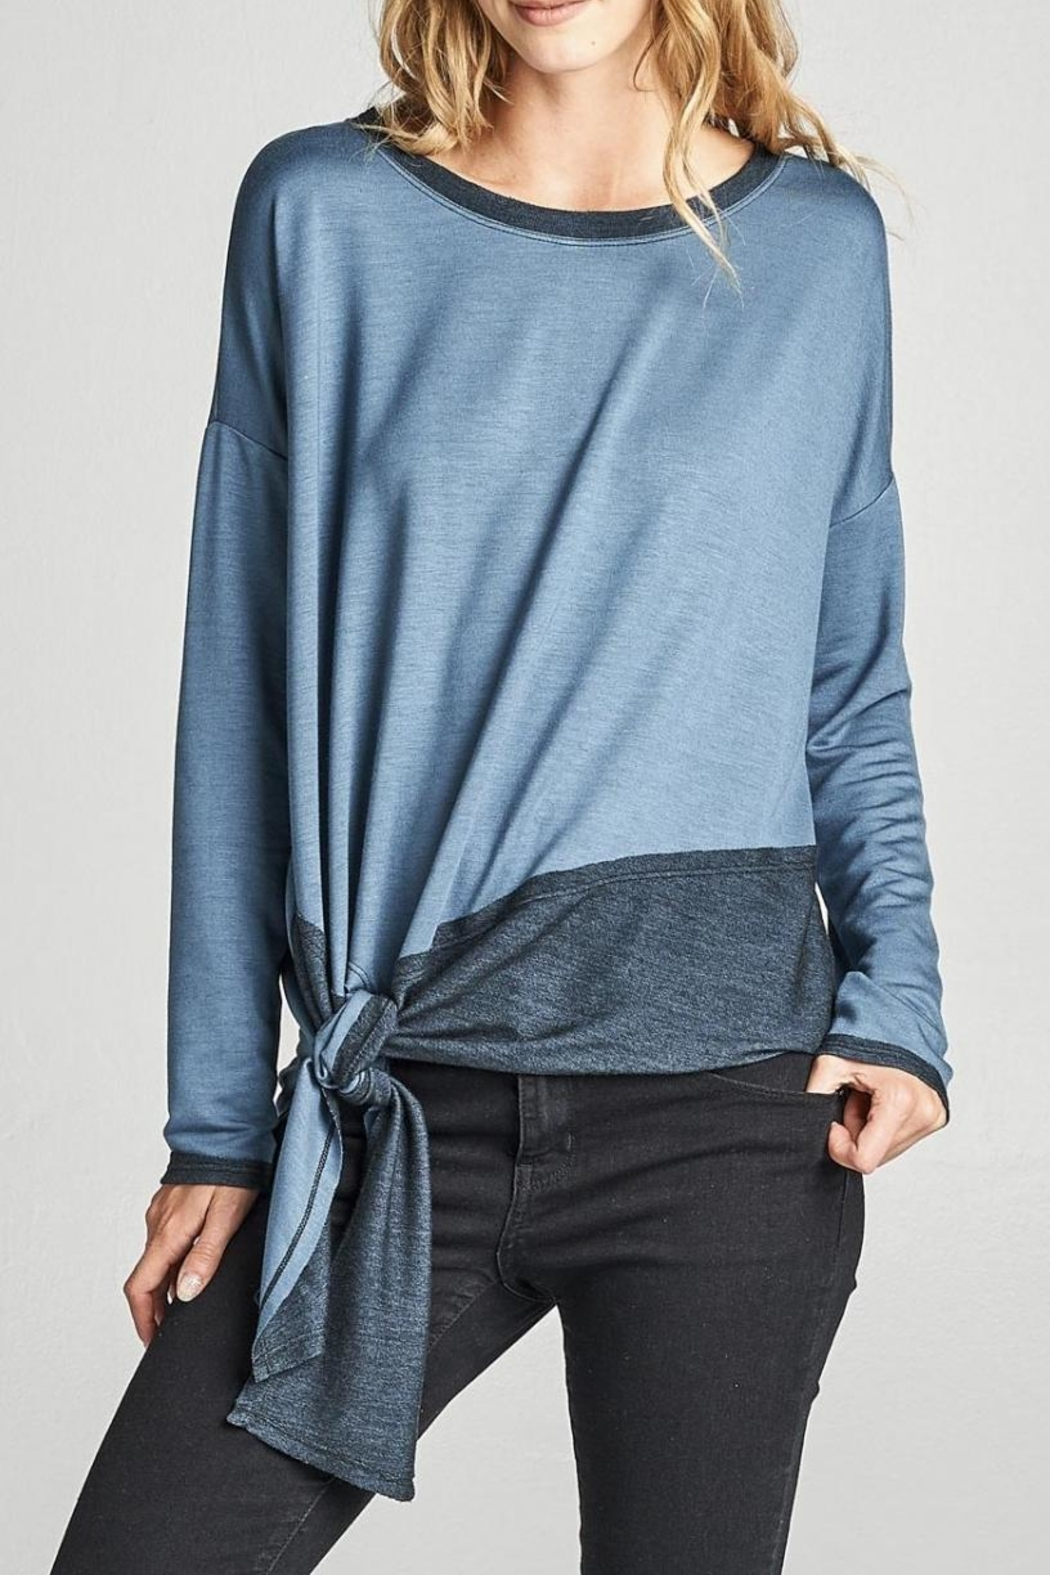 Cotton Bleu Color Block Top - Front Cropped Image